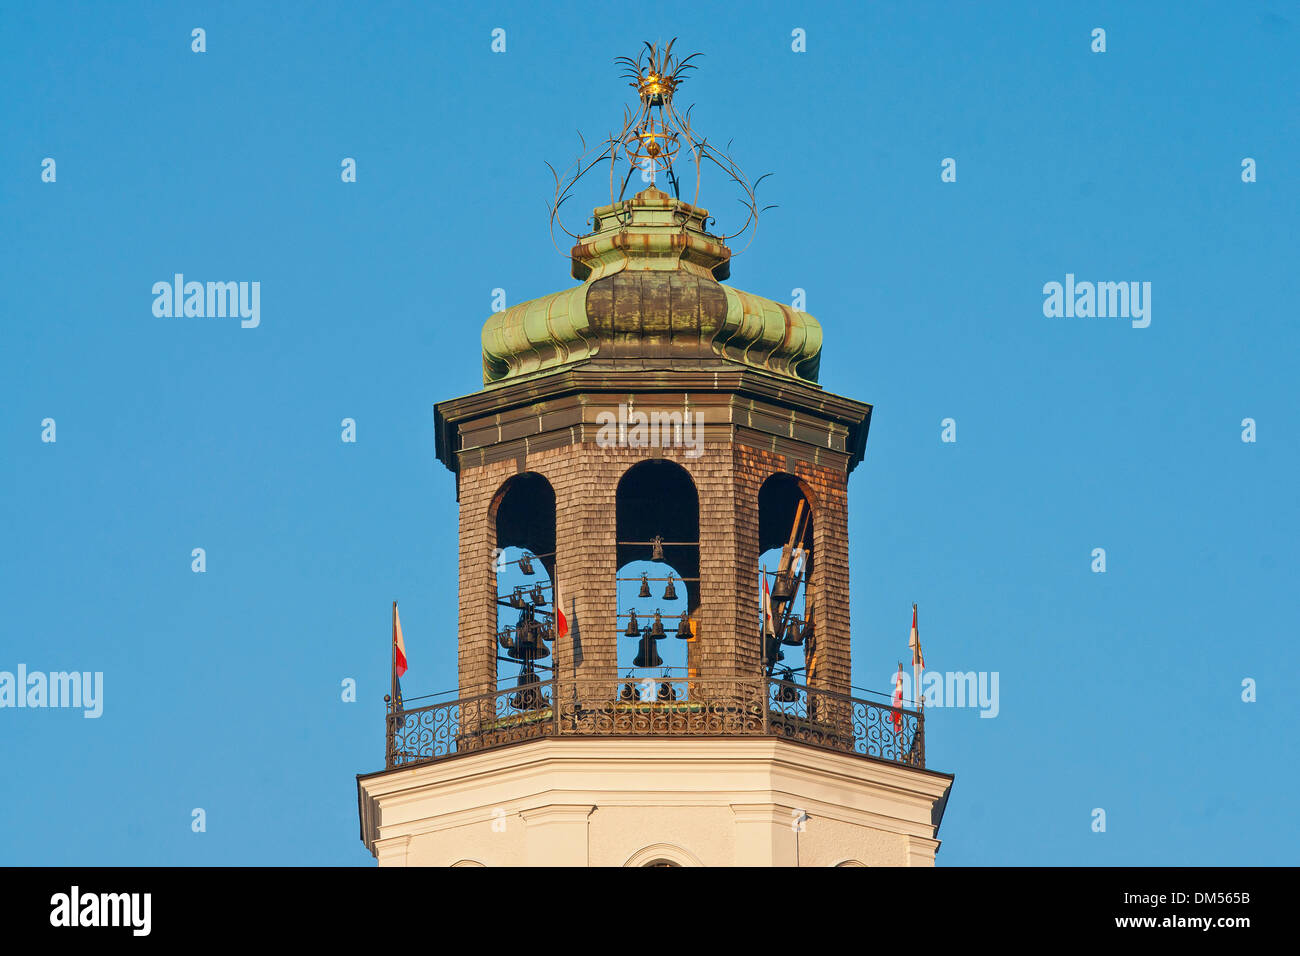 Austria, Salzburg, tower, carillon, chime, bells, art, culture, Old Town, town, city, - Stock Image